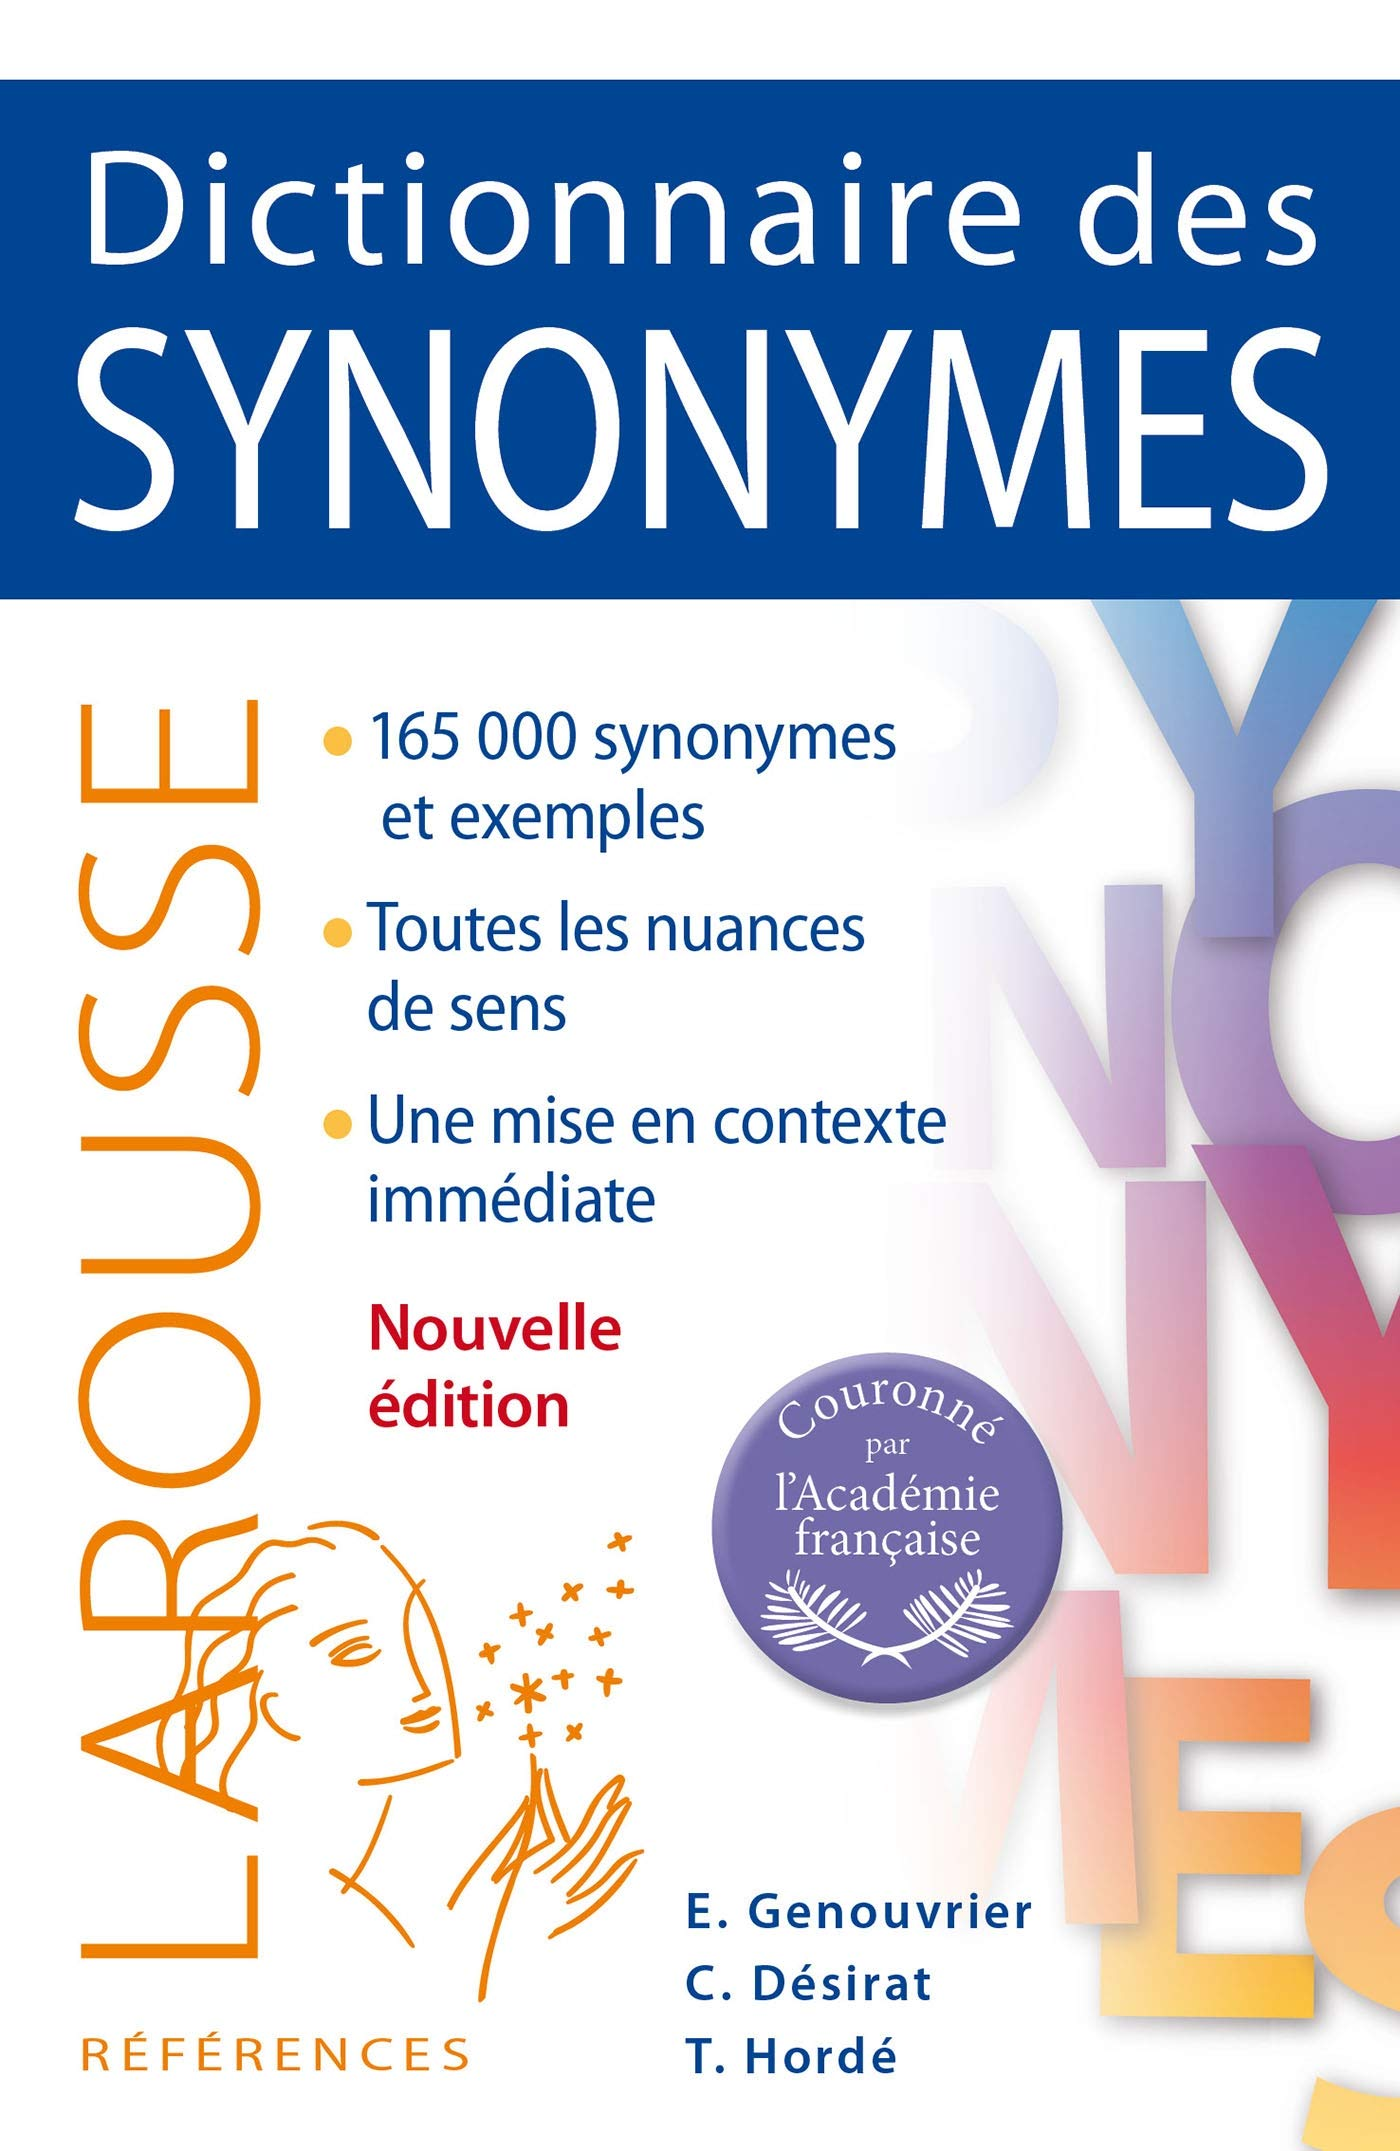 Synonymes de datation